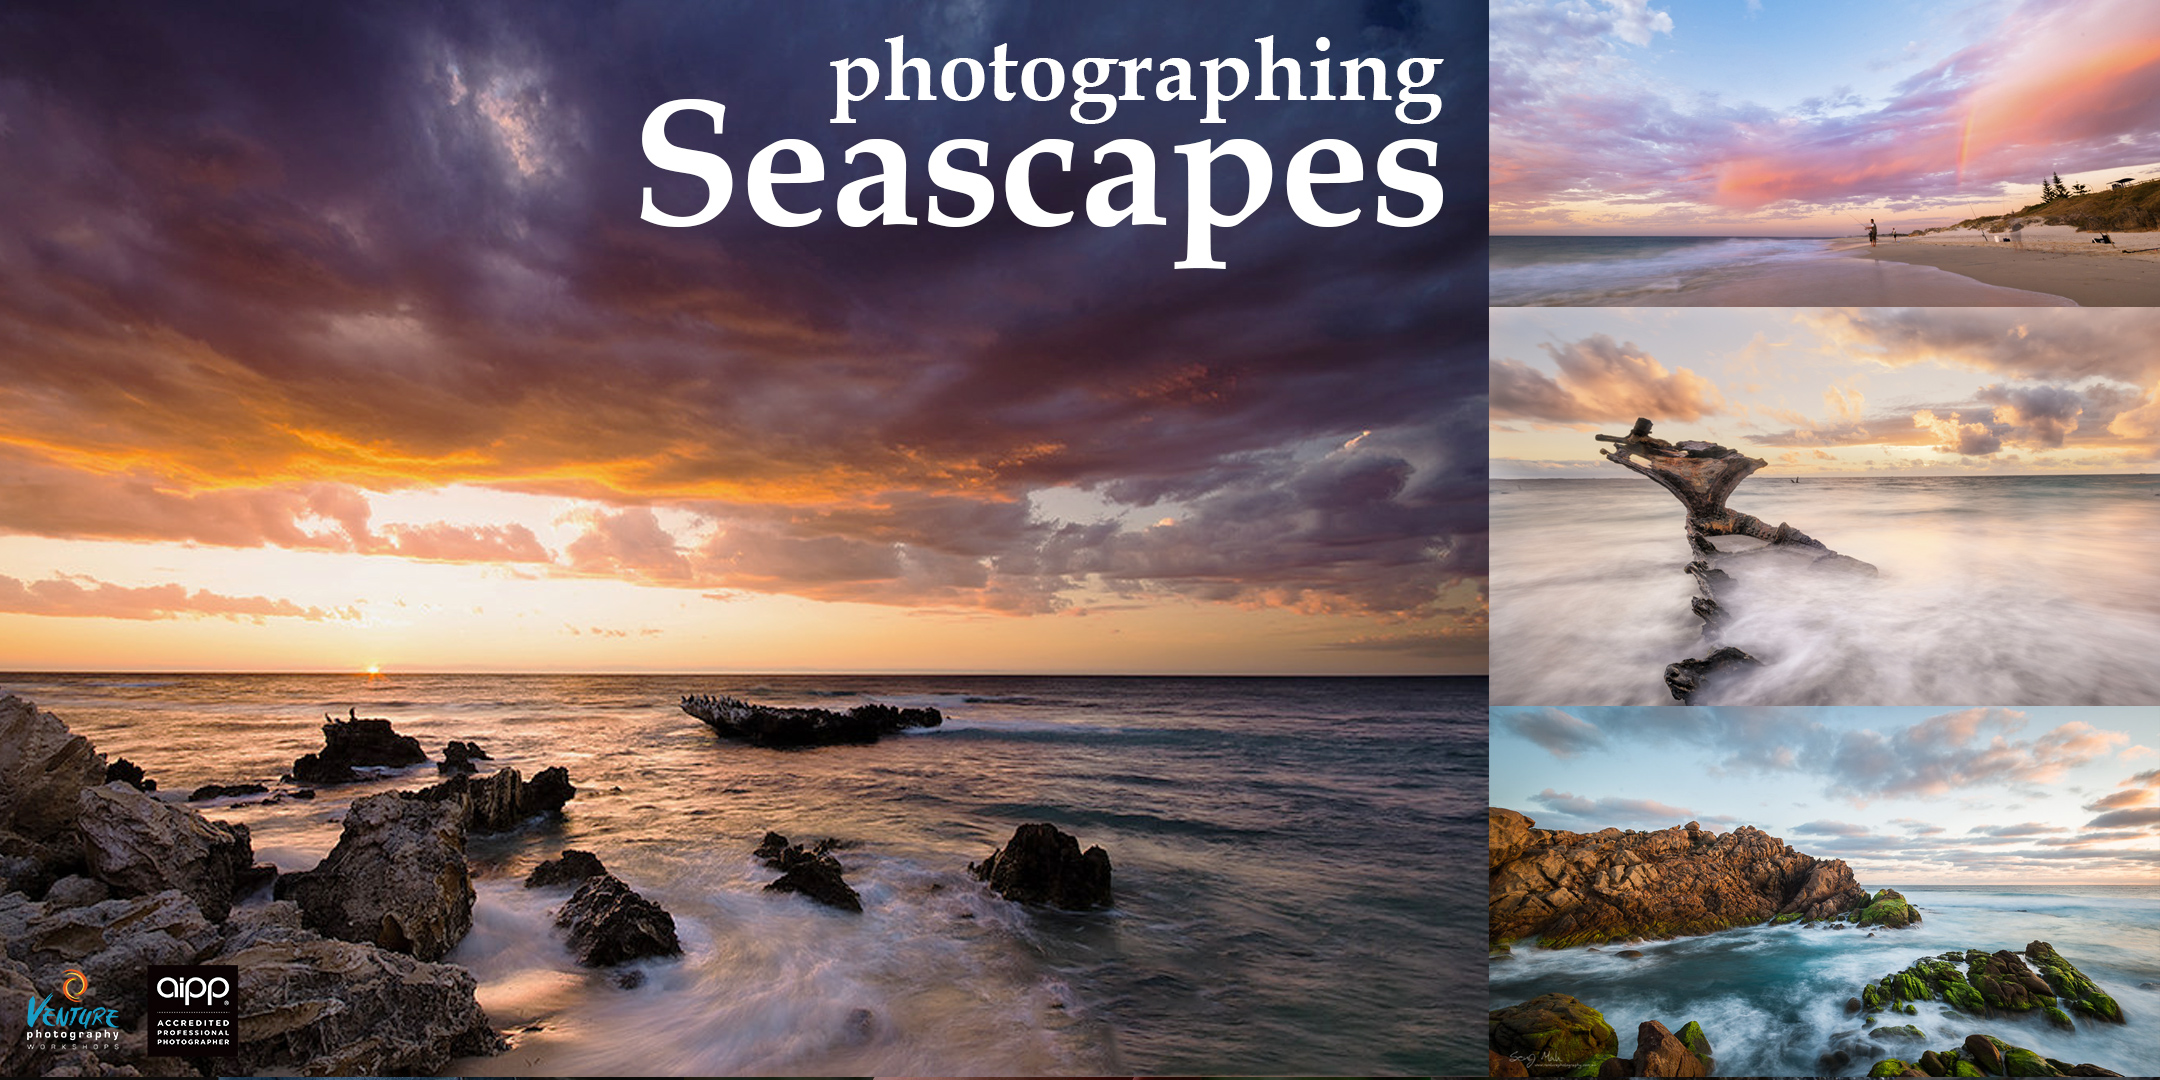 Photographing Seascapes Poster